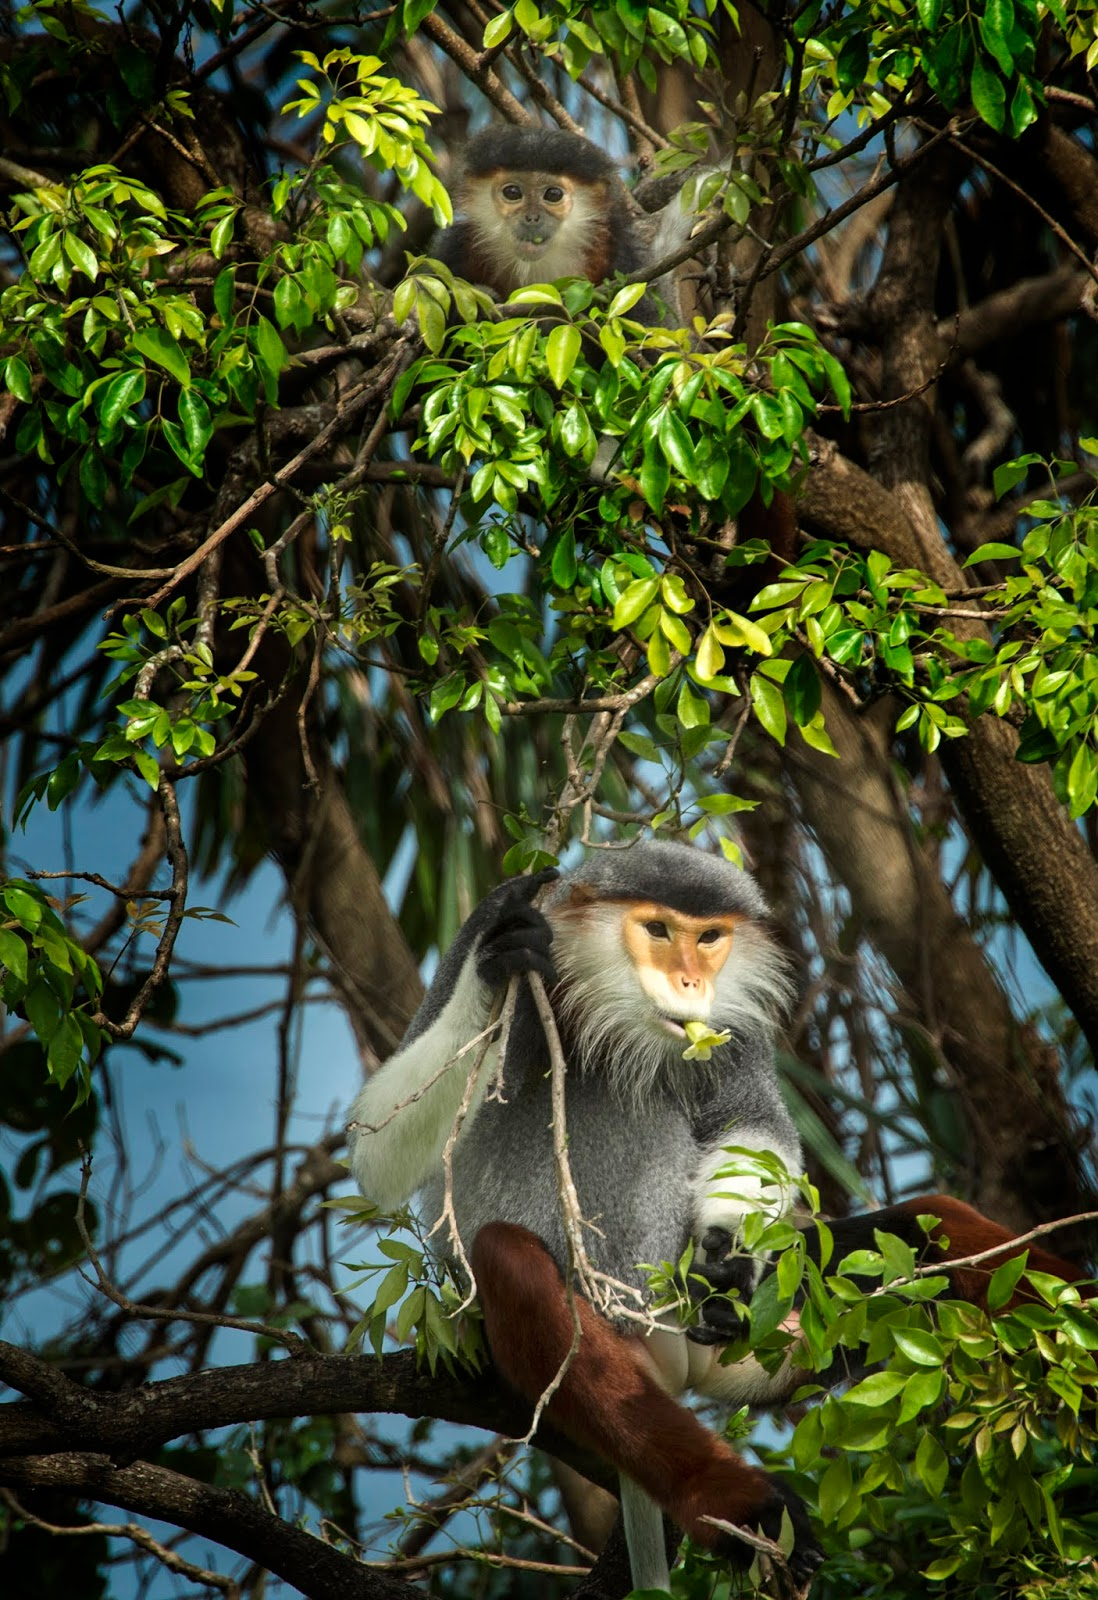 Watching the flock of hundreds of langurs